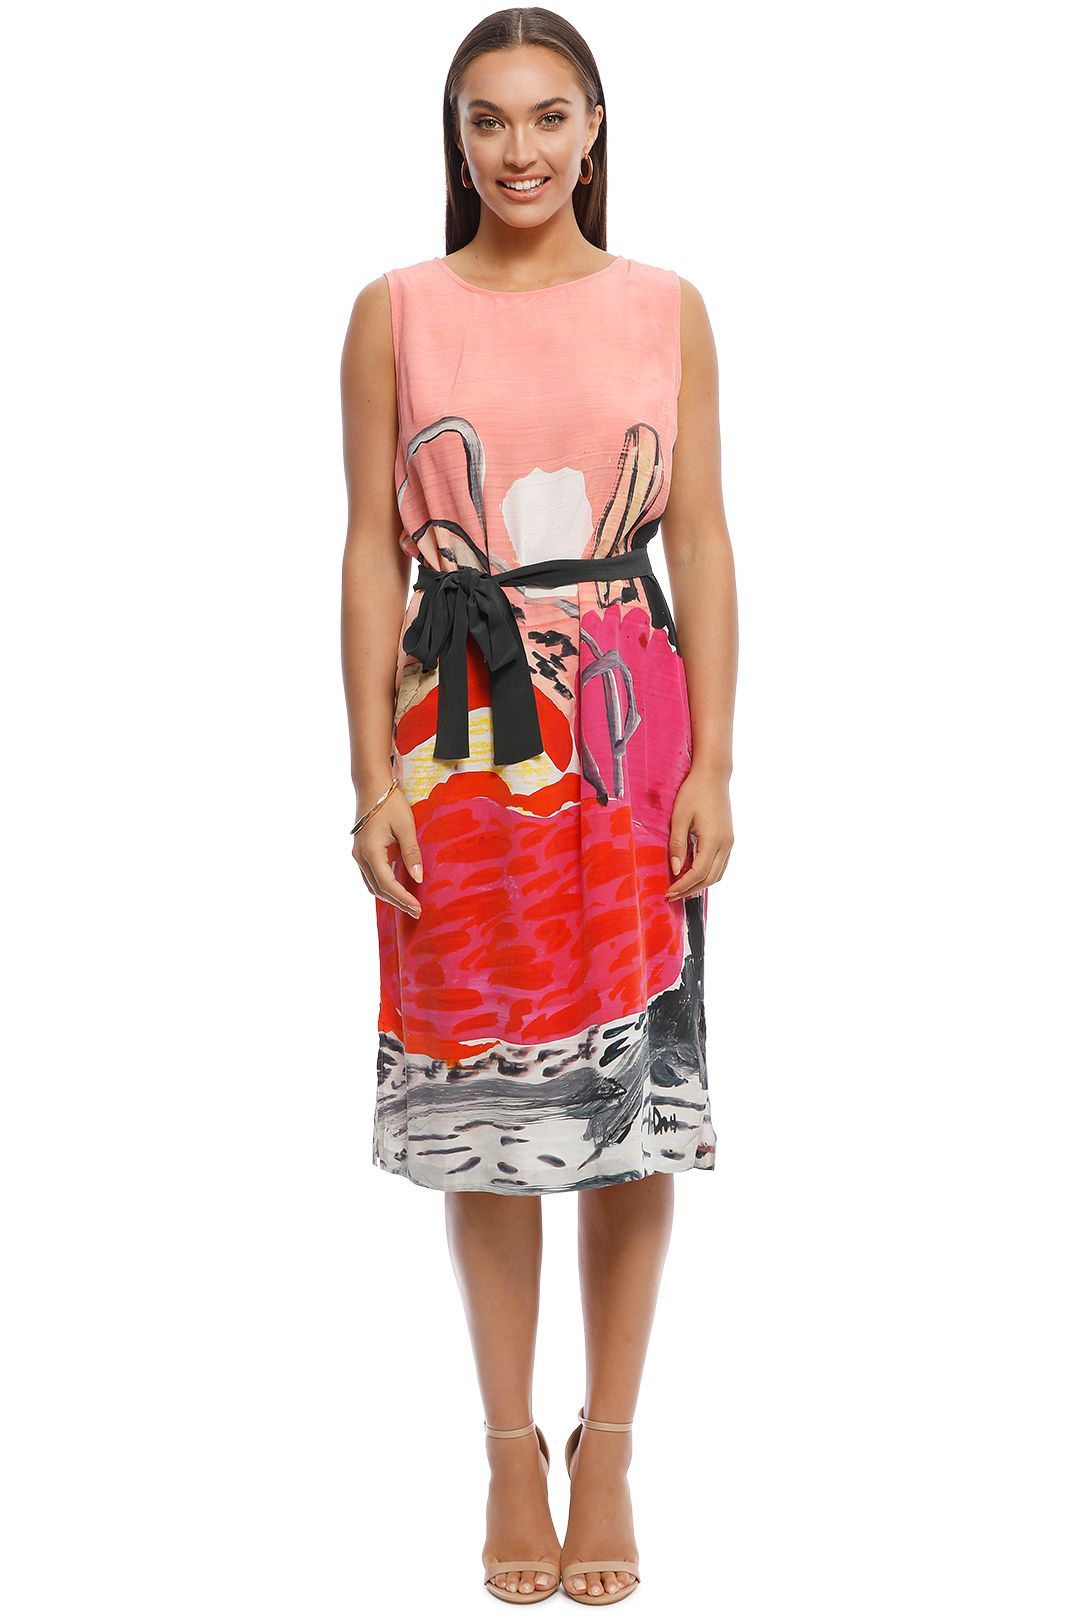 Gorman - Scape Dress - Print - Front